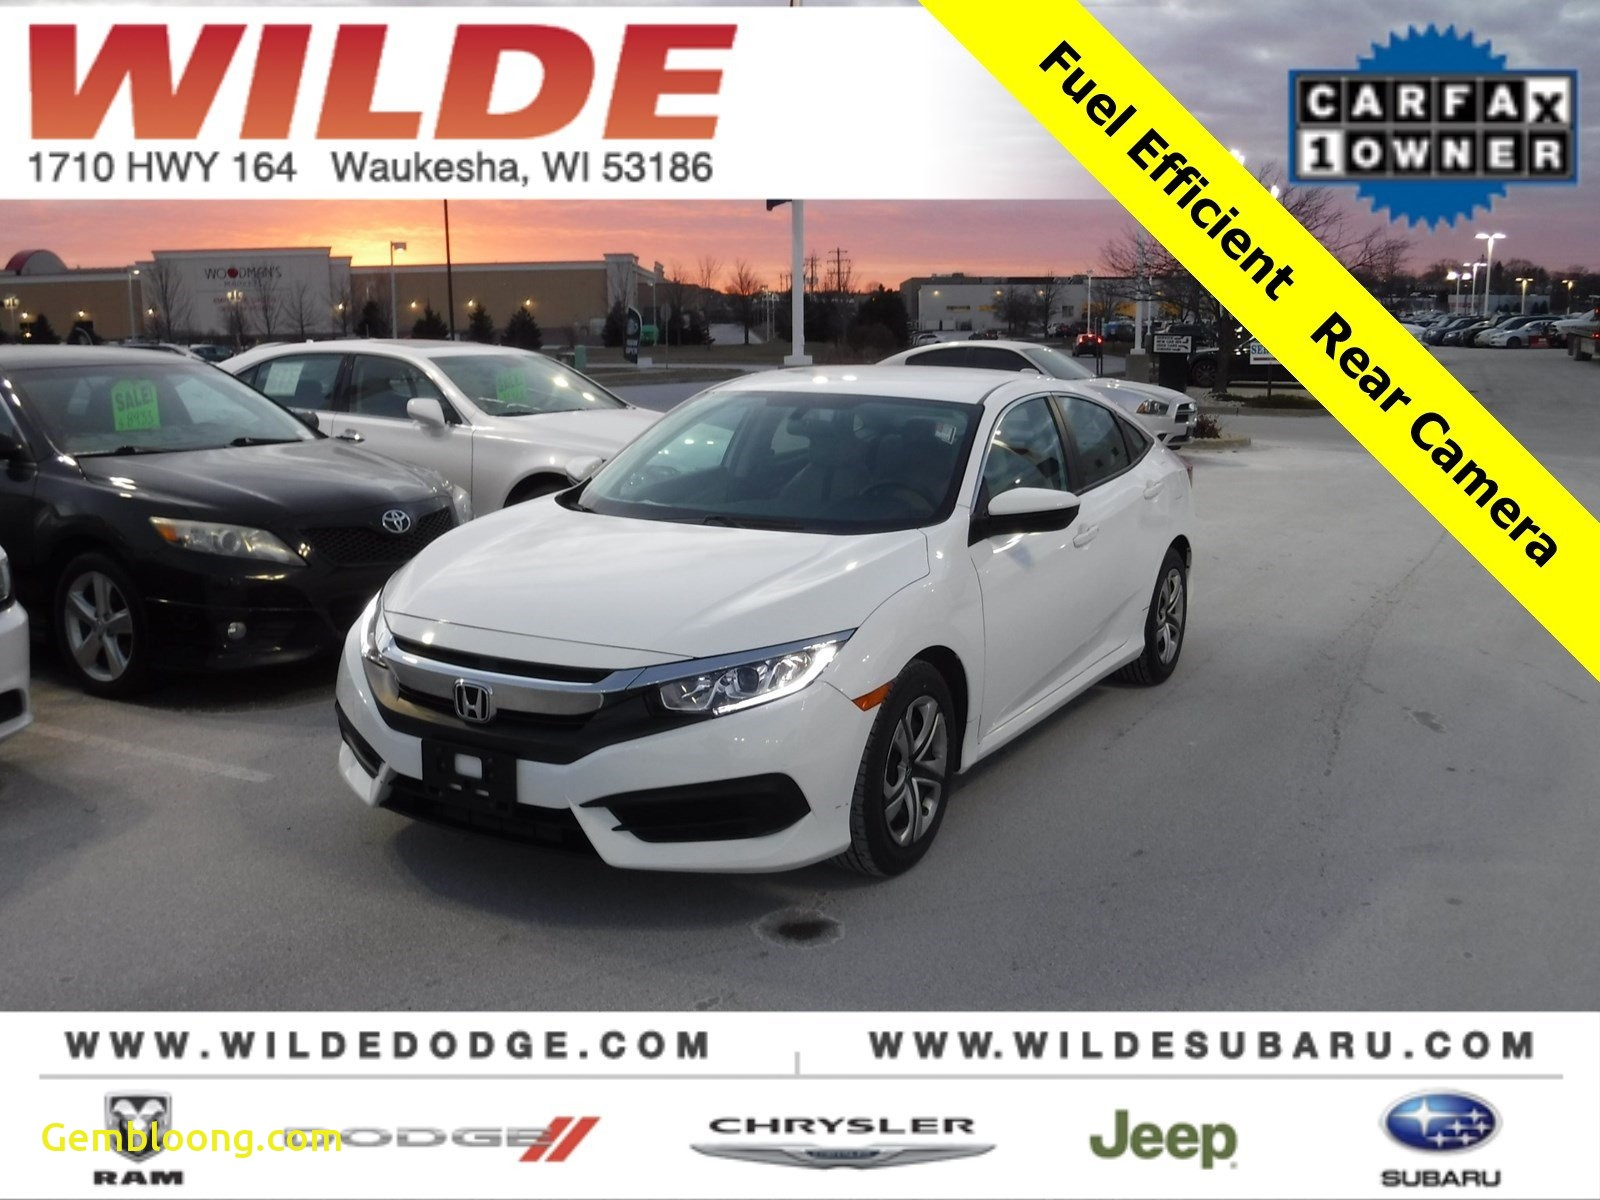 Carfax Used Cars New Jersey Unique Pre Owned 2017 Honda Civic Sedan Lx 2wd Fwd Sedan